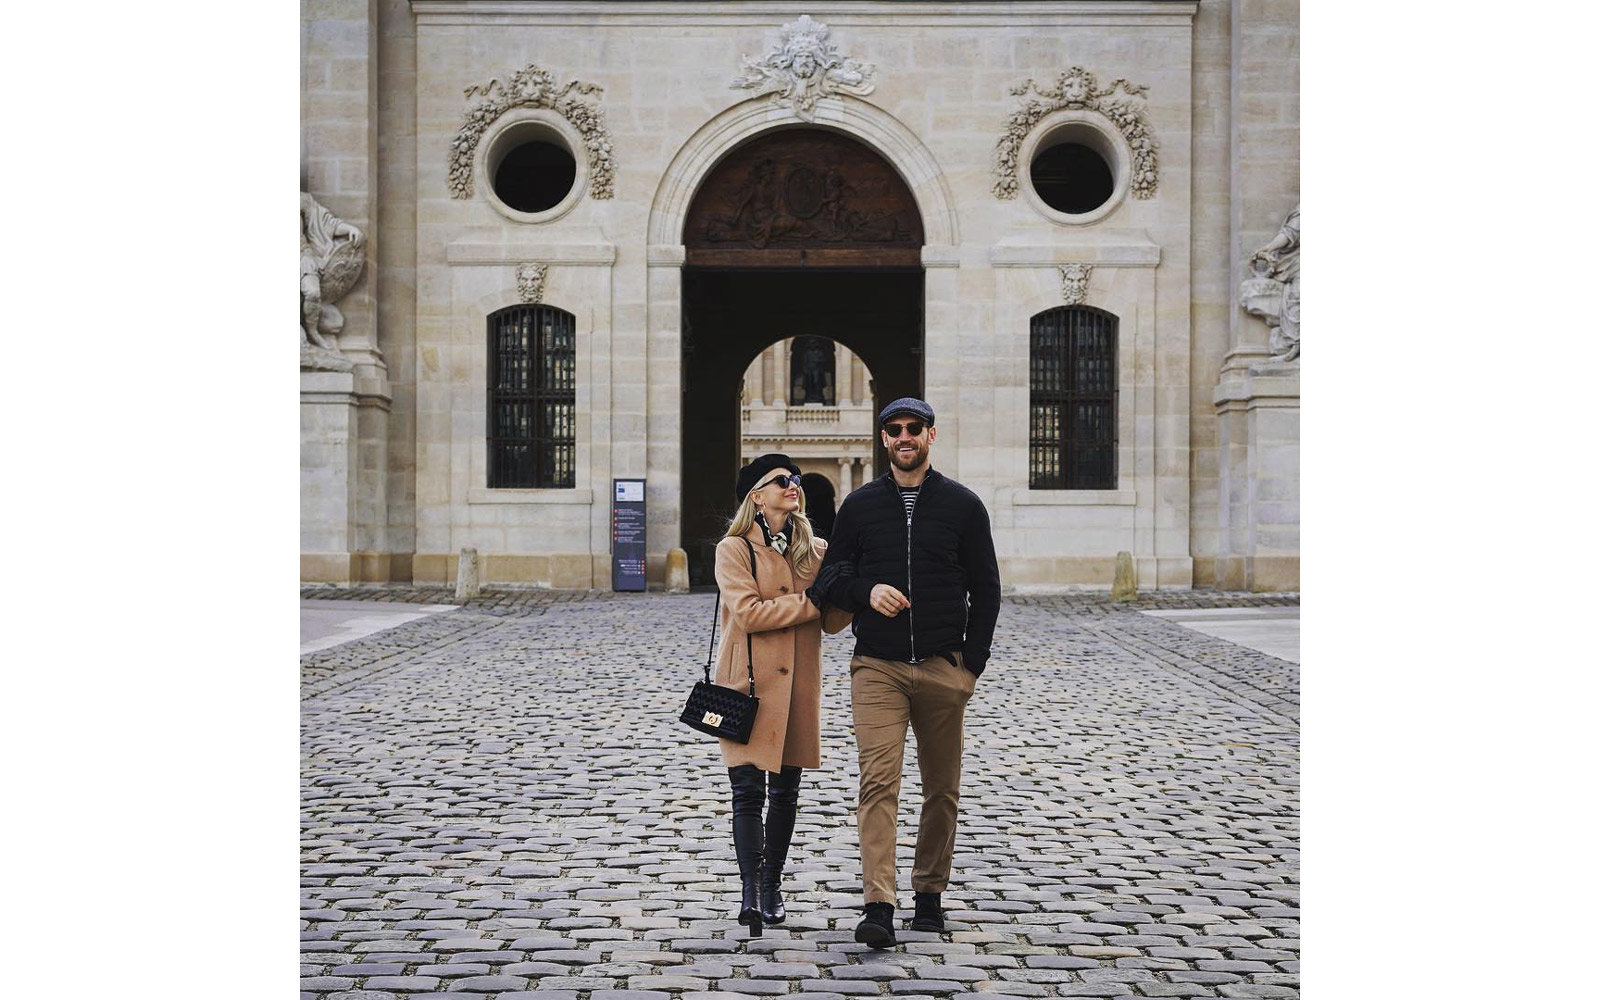 Julianne Hough and Brooks Laich walking through Paris